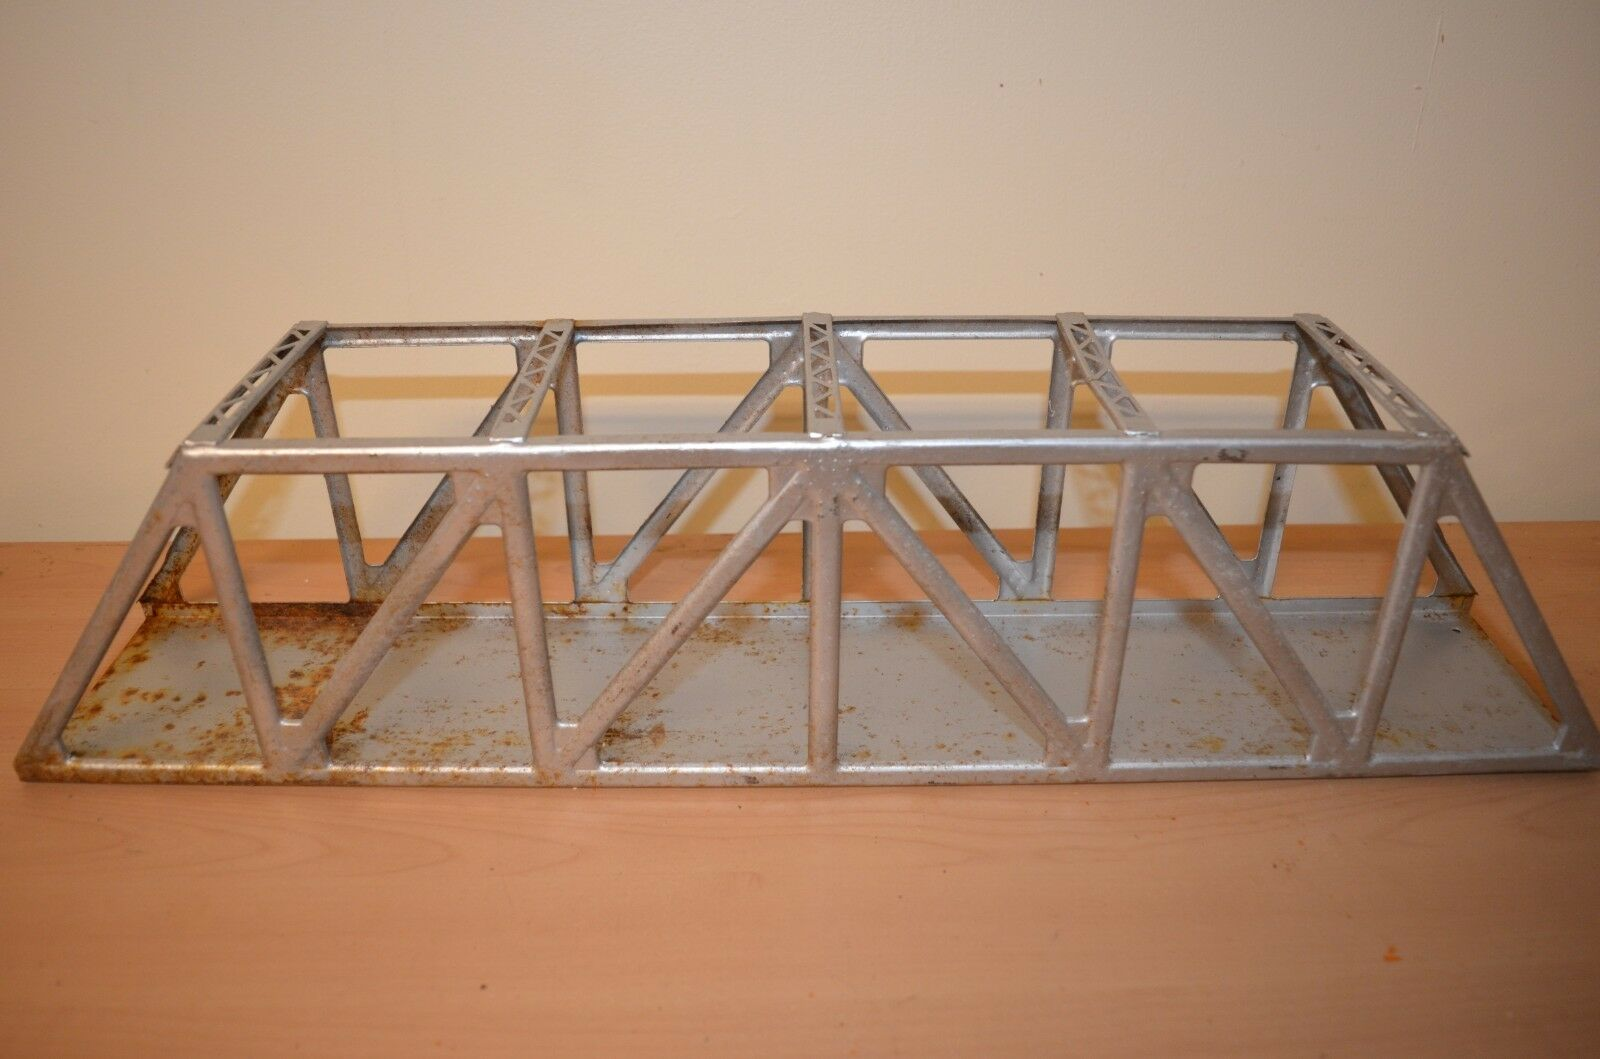 LIONEL 317 Trestle Bridge Accessory O Gauge Trains 24  long